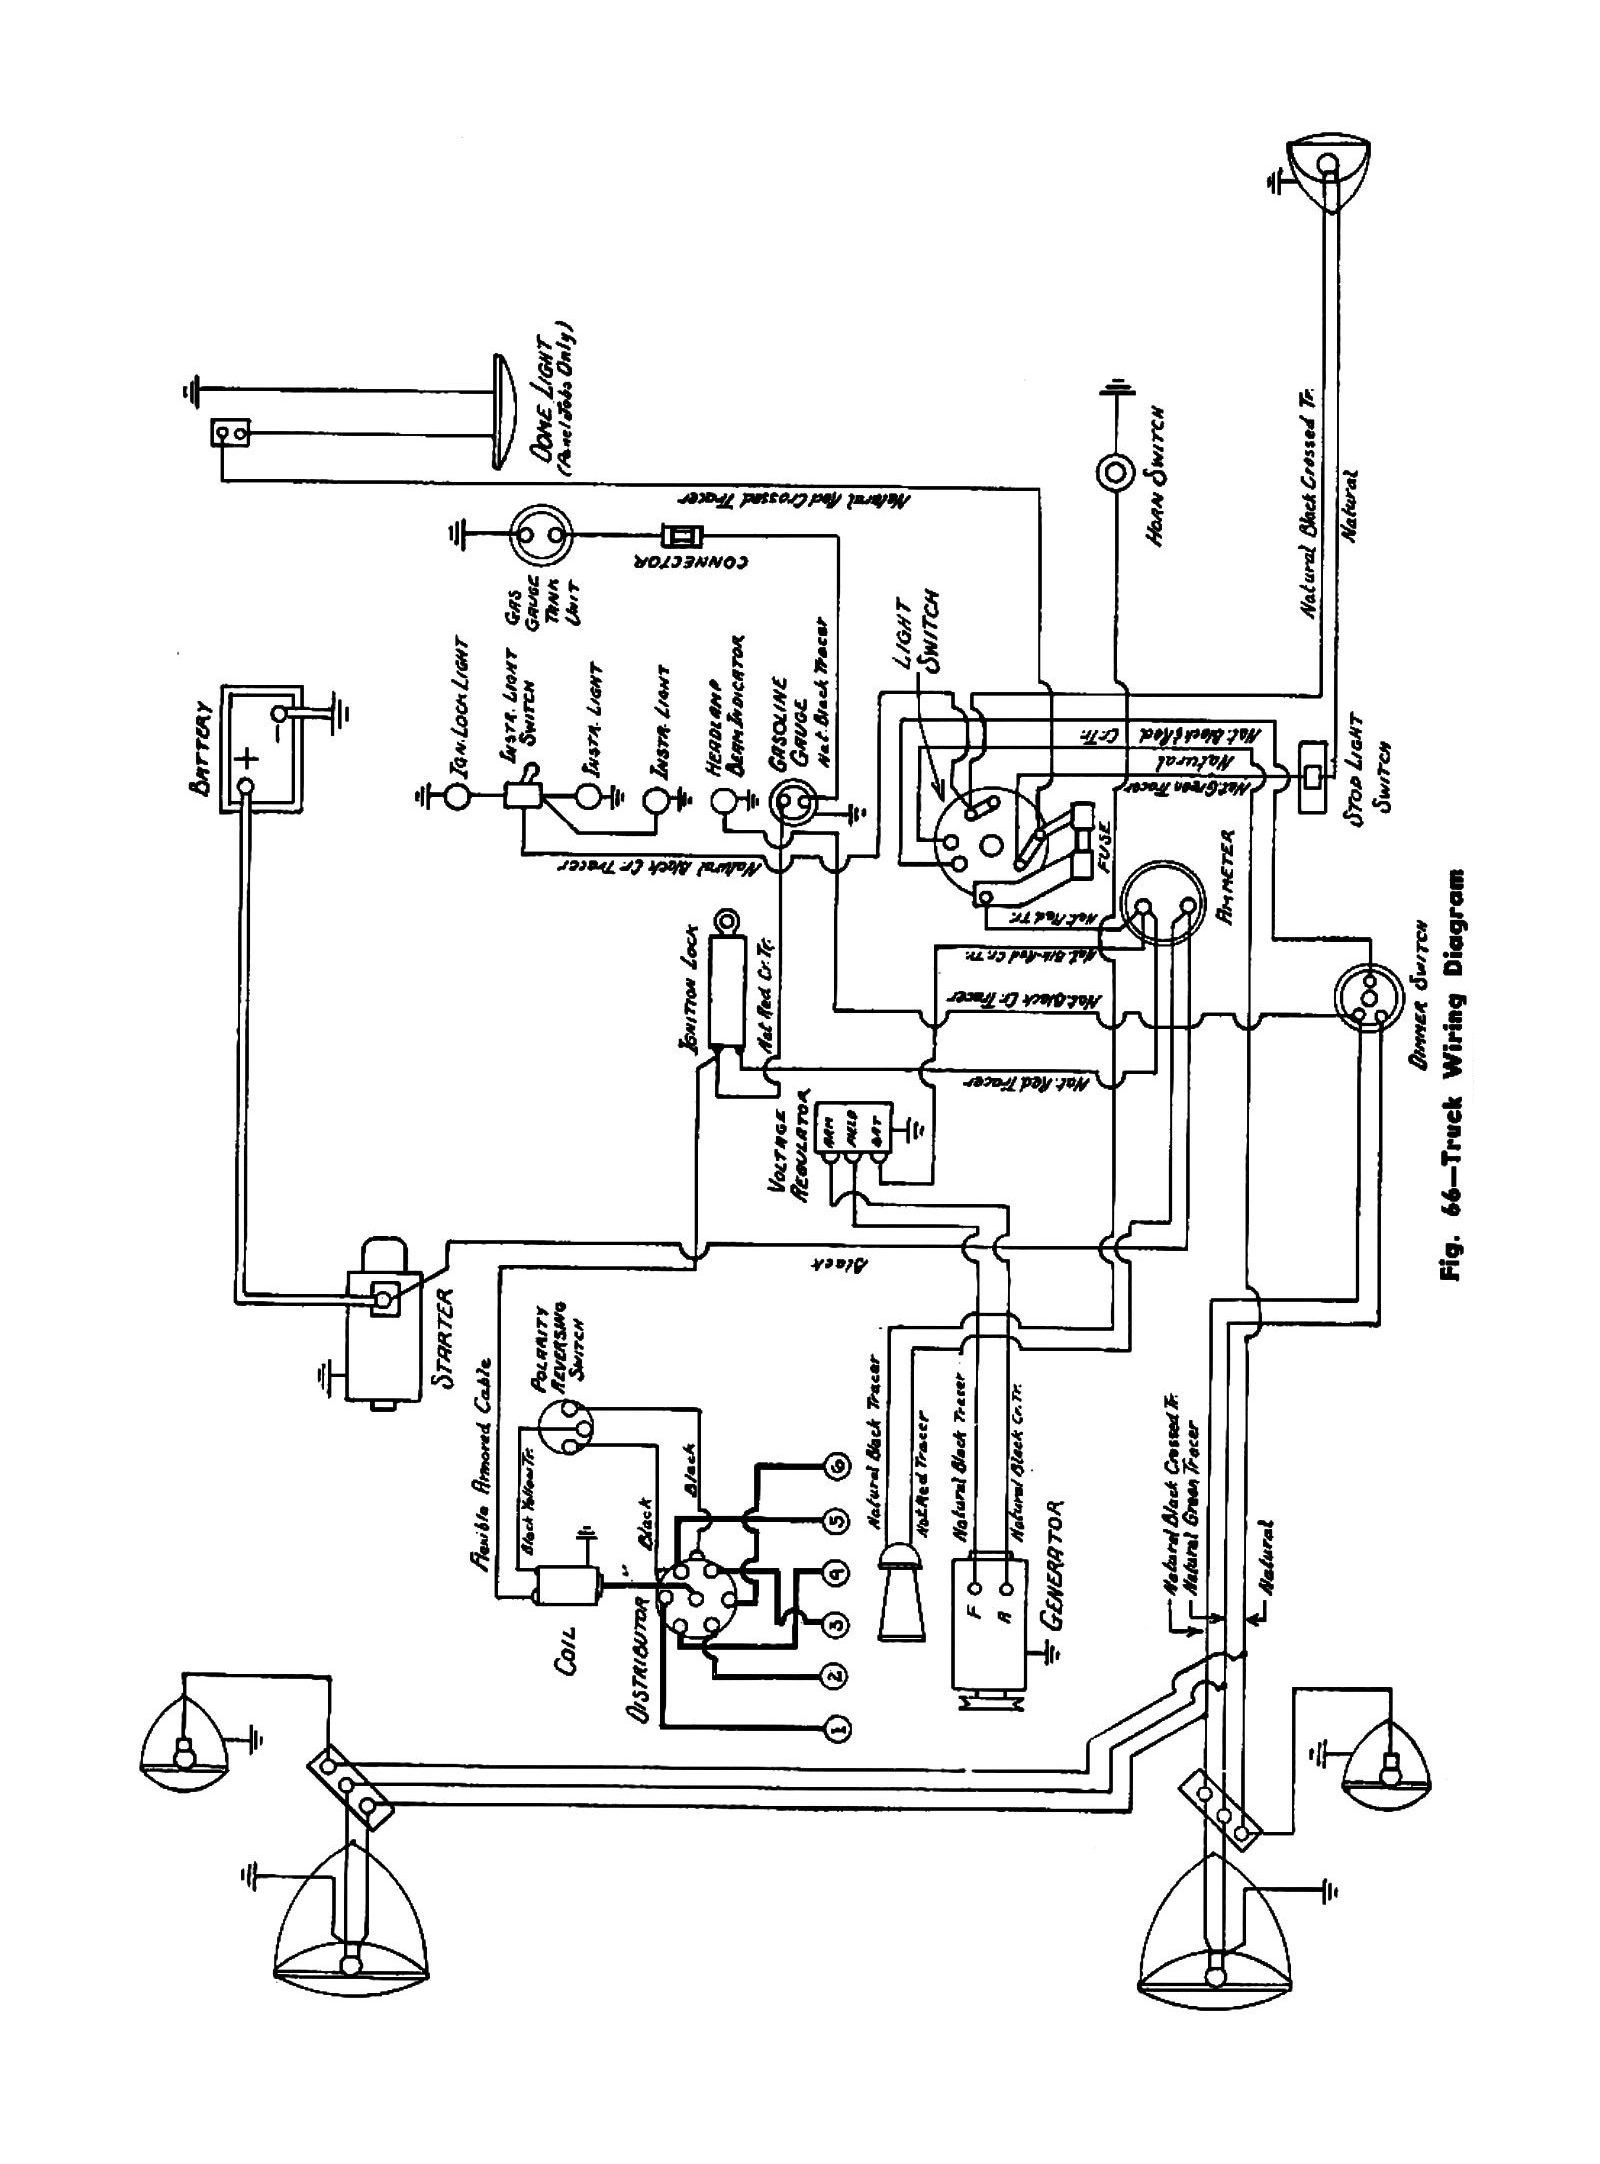 hight resolution of 1946 chevy pickup ignition wiring diagram schematic data wiring chevy rear end schematics 1946 chevy truck